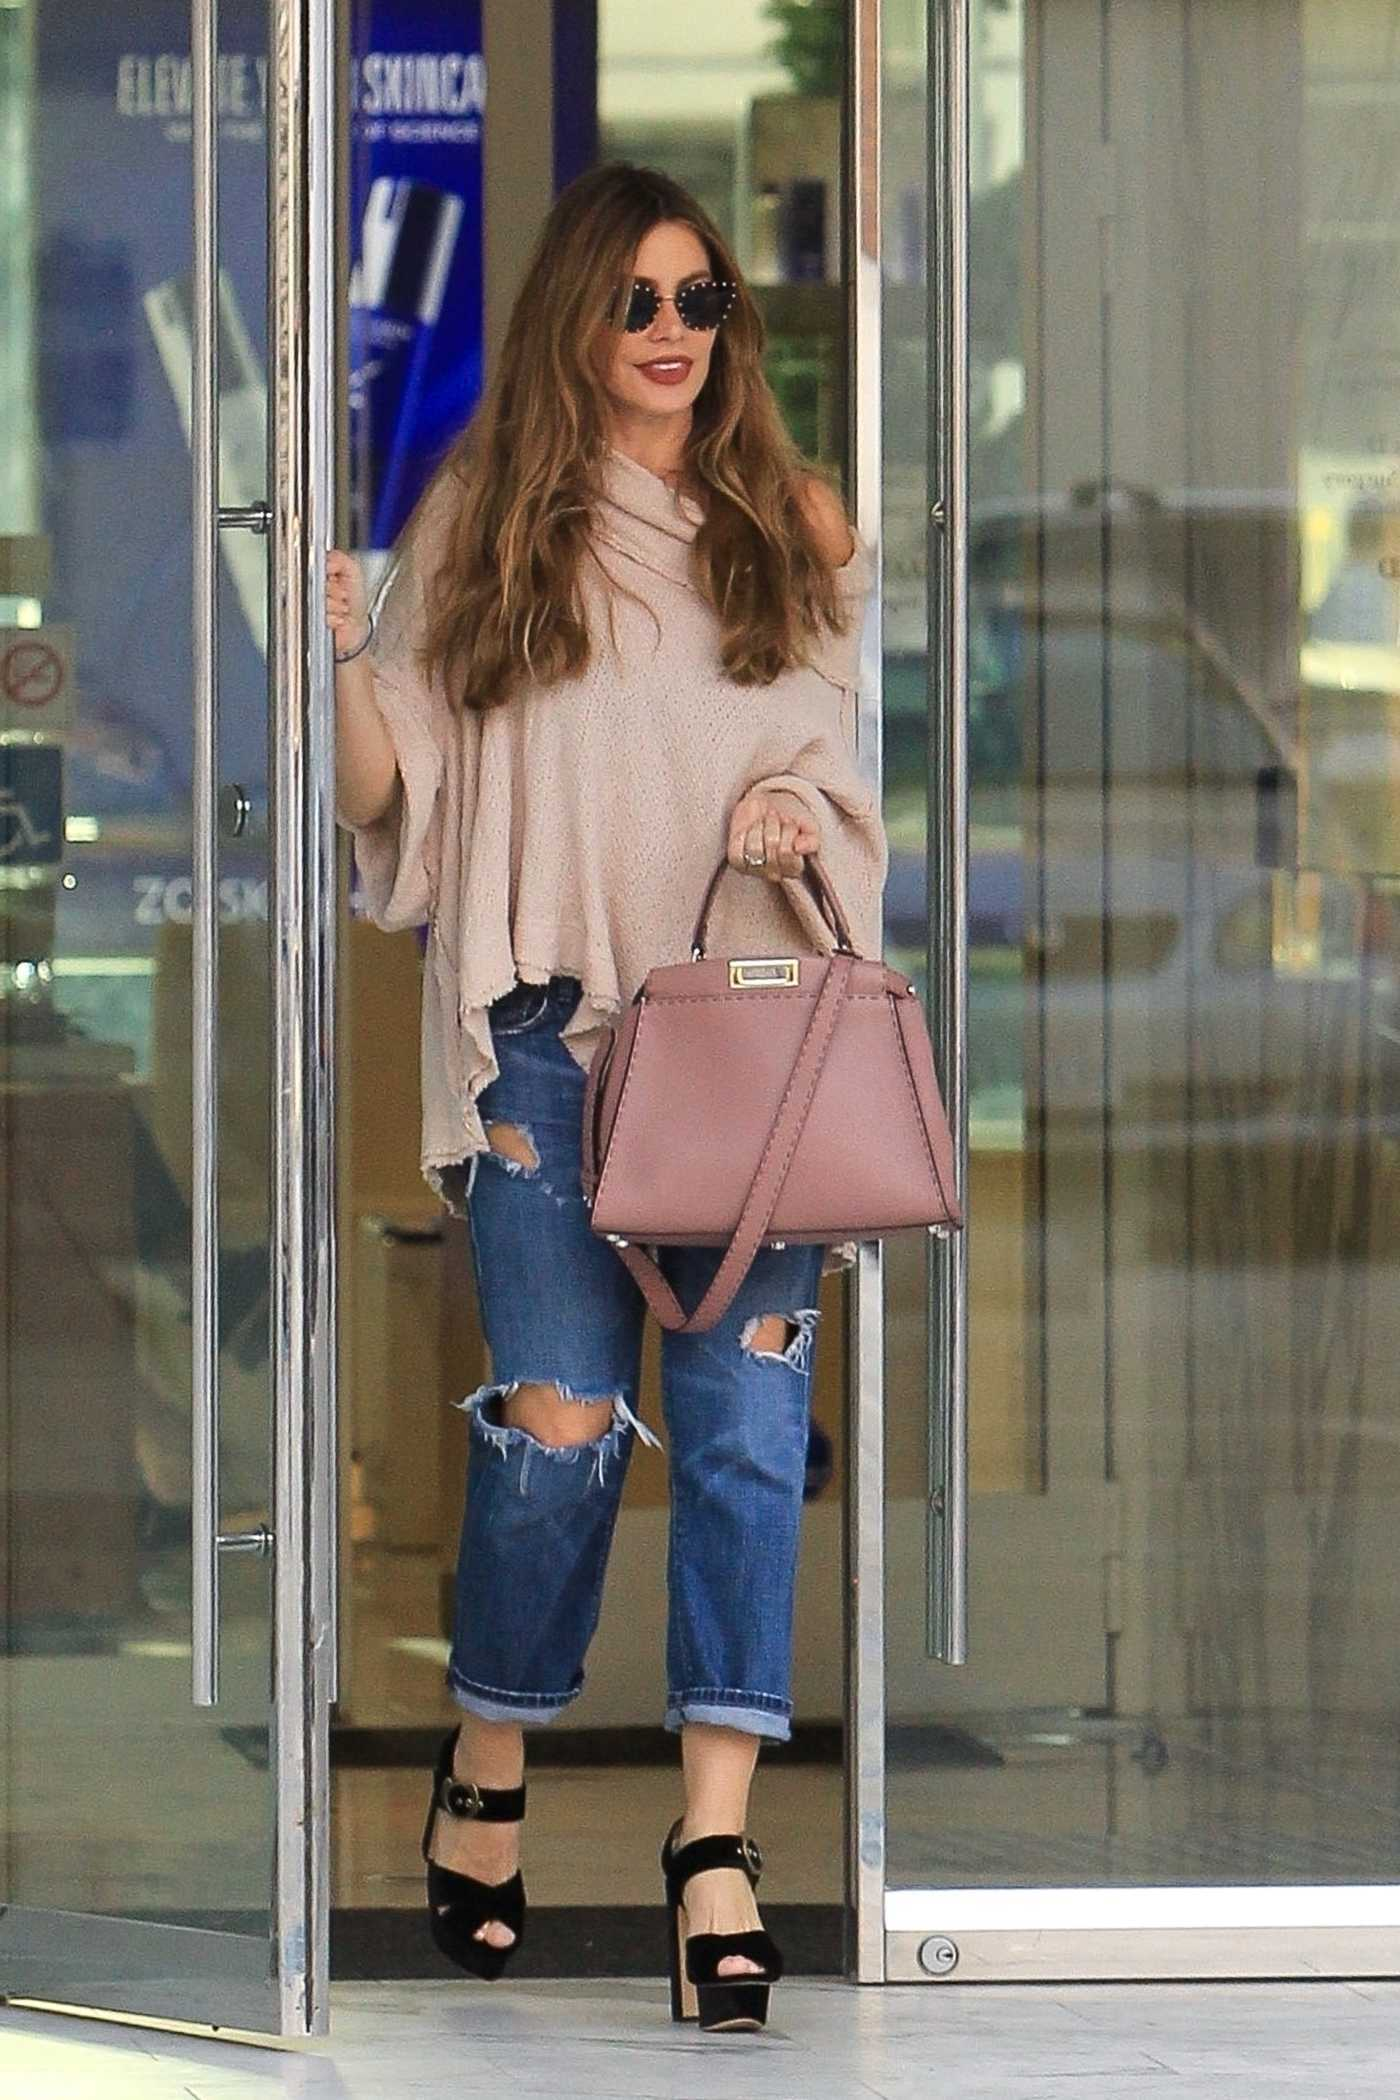 Sofia Vergara in a Blue Ripped Jeans Out Shopping in Beverly Hills 11/13/2018